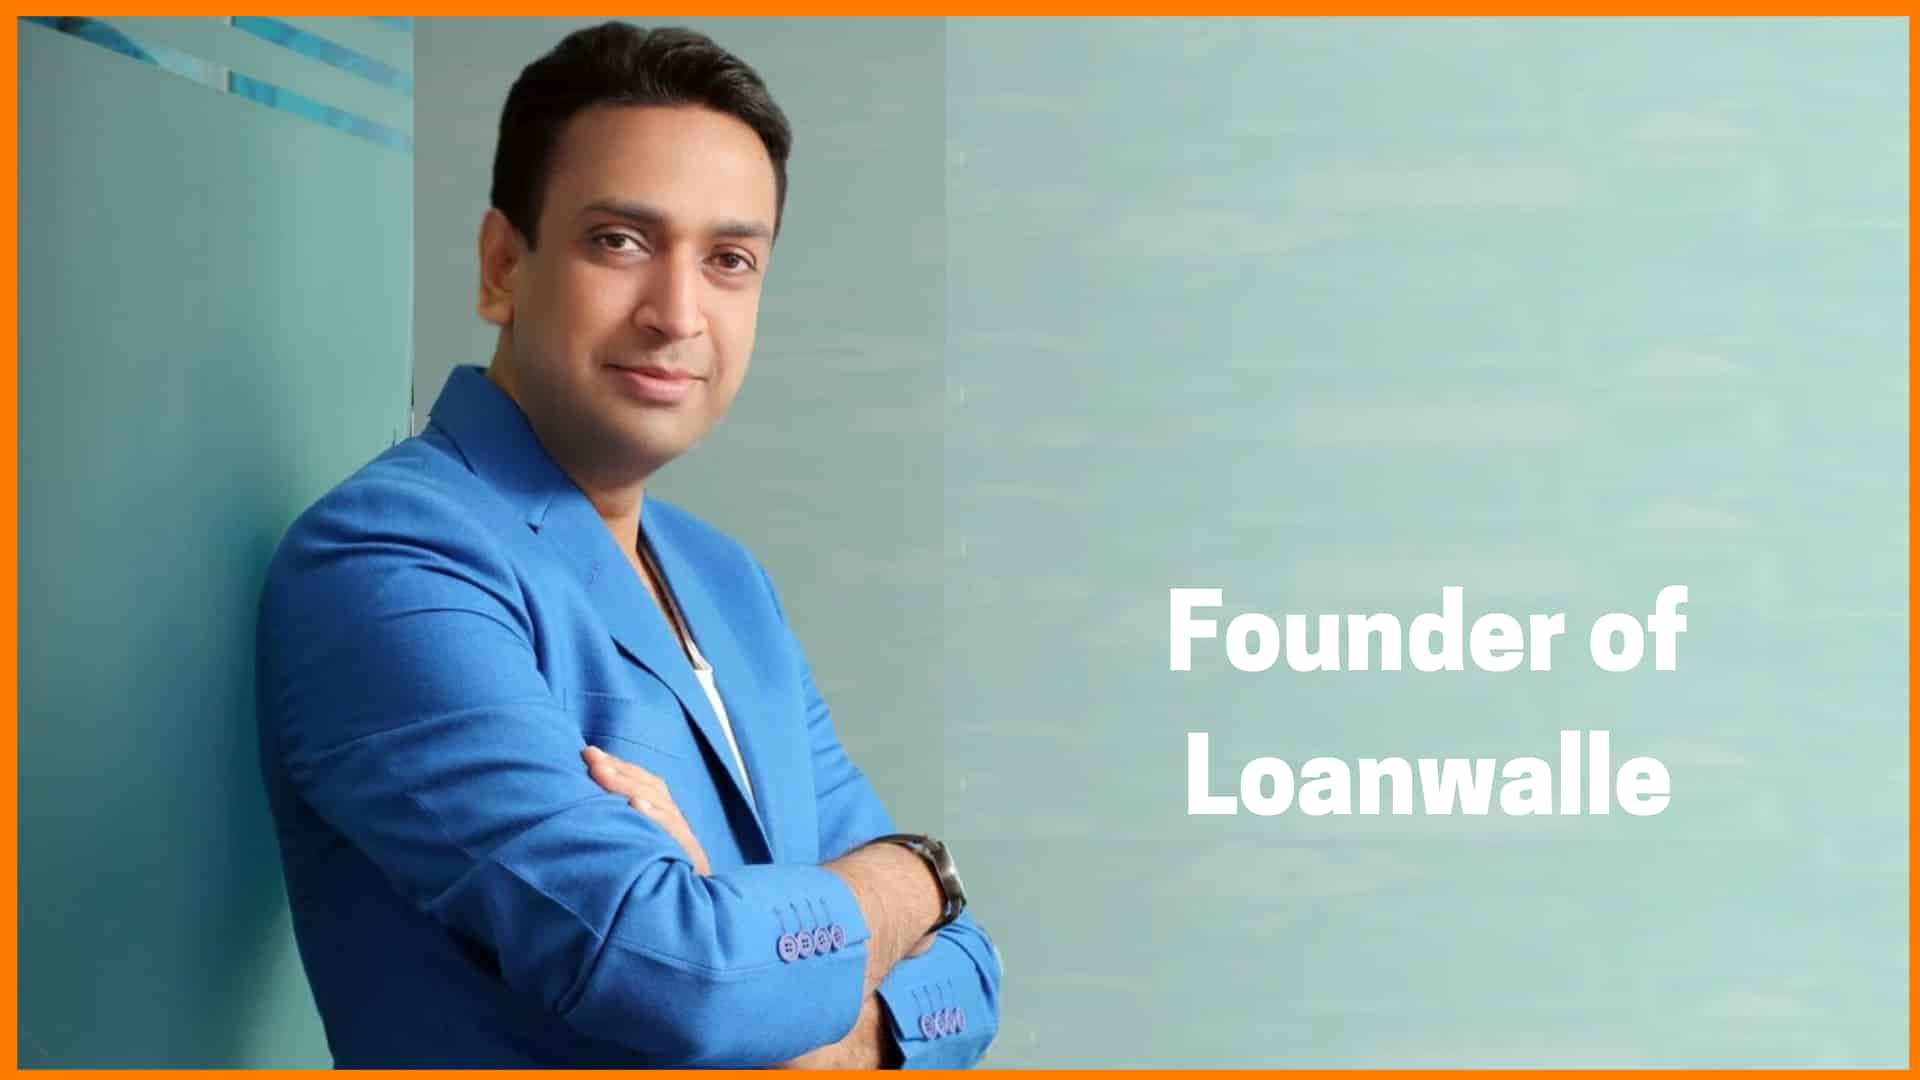 Loanwalle.com - Making instant and short-term loans accessible!